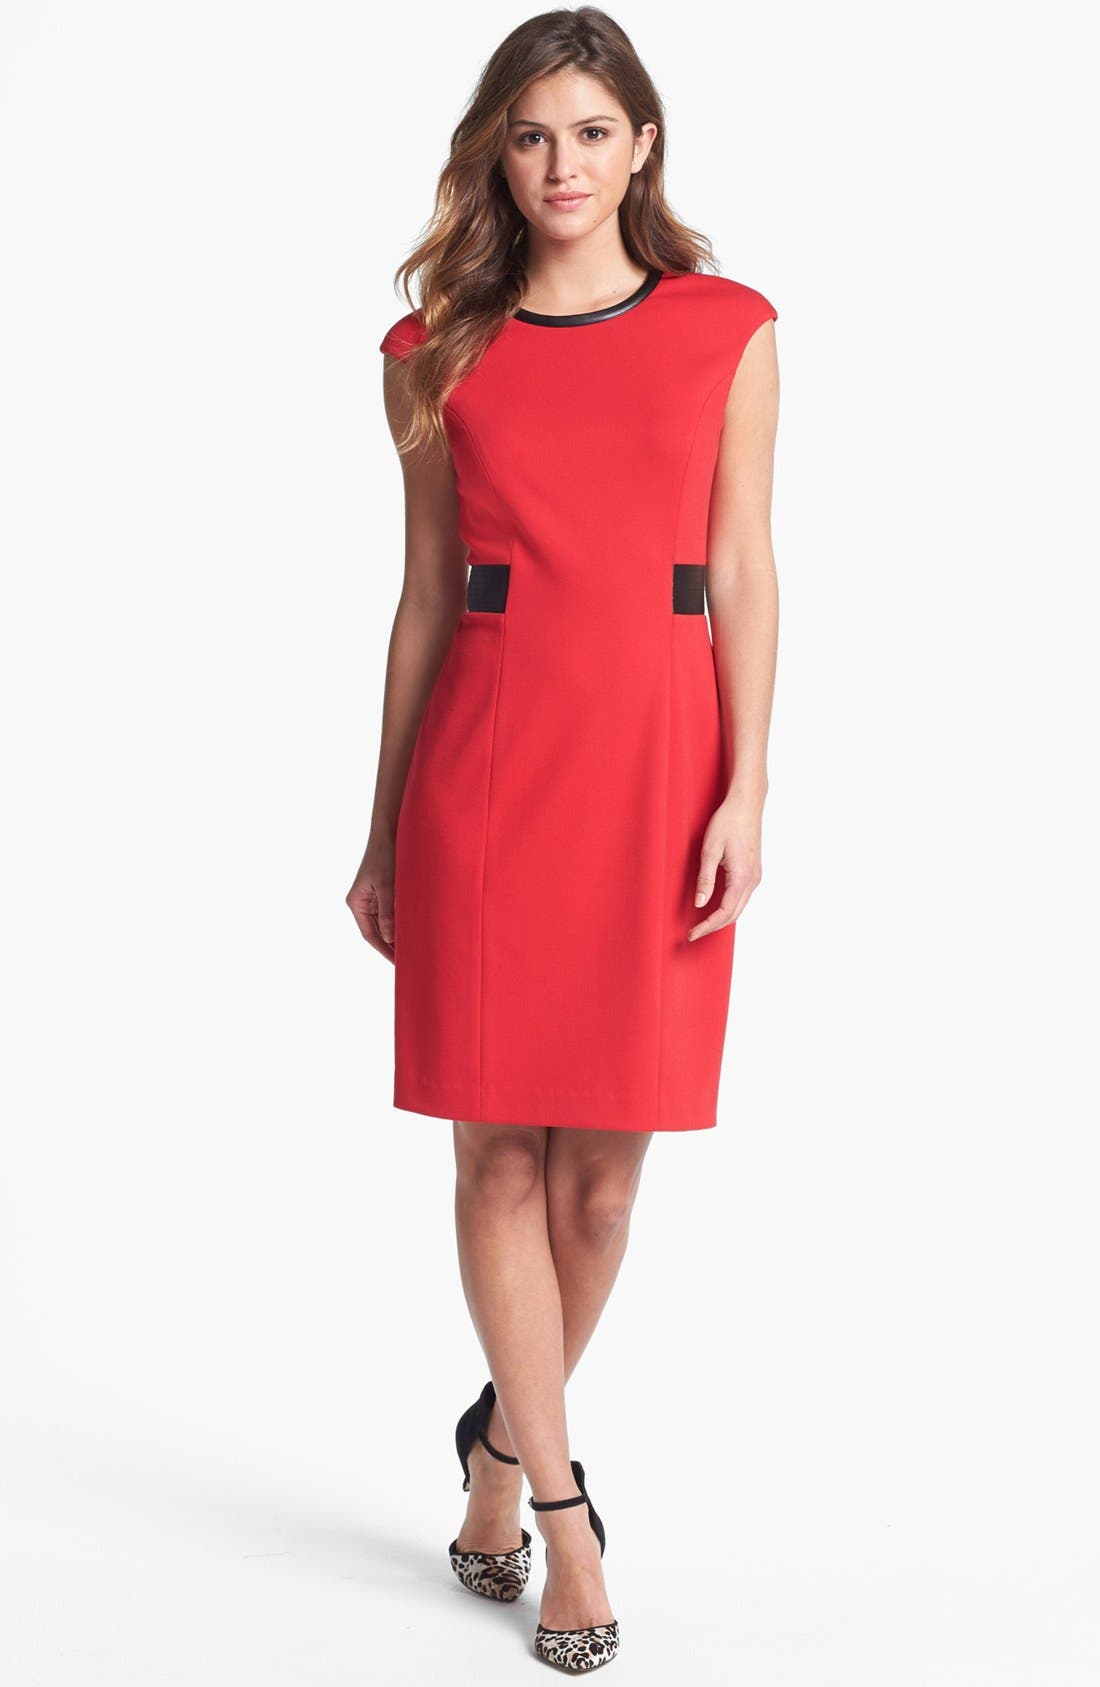 Alternate Image 1 Selected - Calvin Klein Faux Leather Trim Ponte Sheath Dress (Petite)